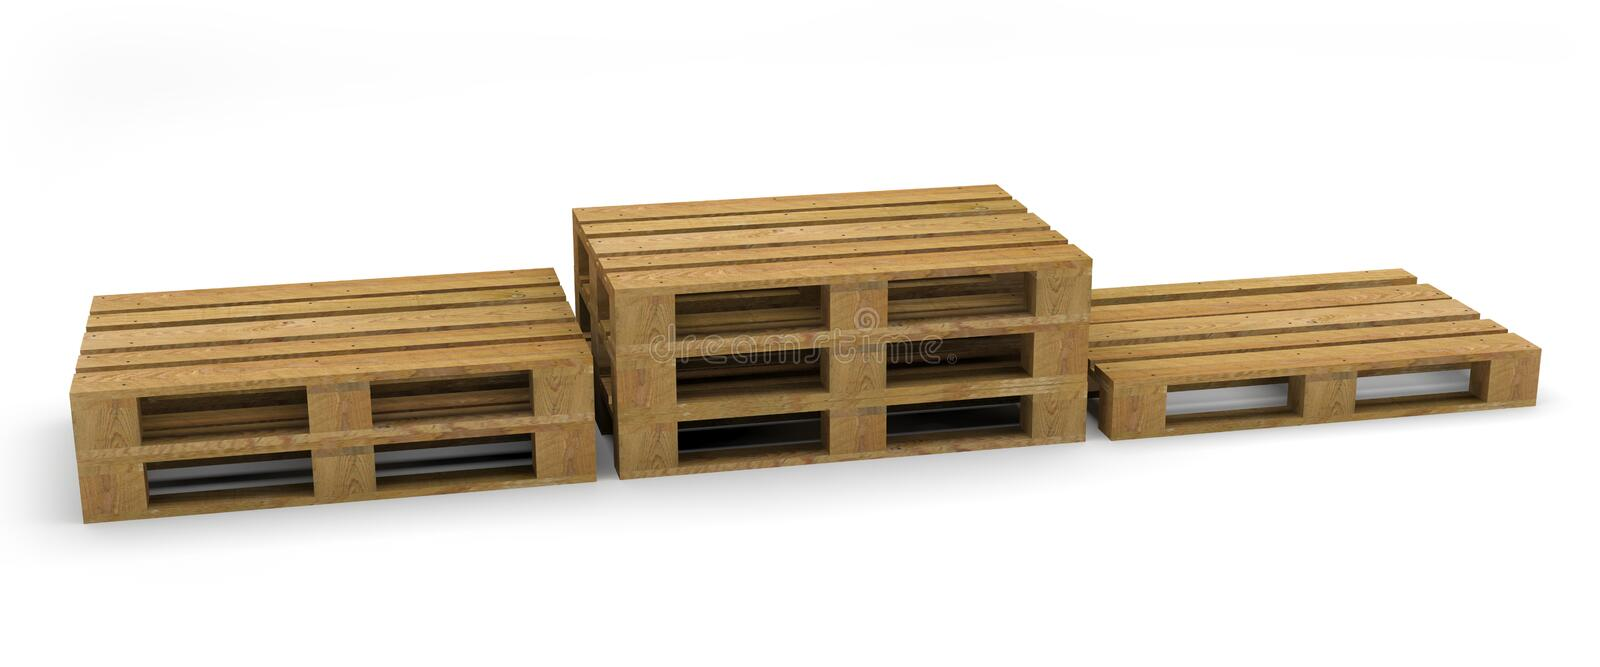 Pallet wood transport handling royalty free illustration